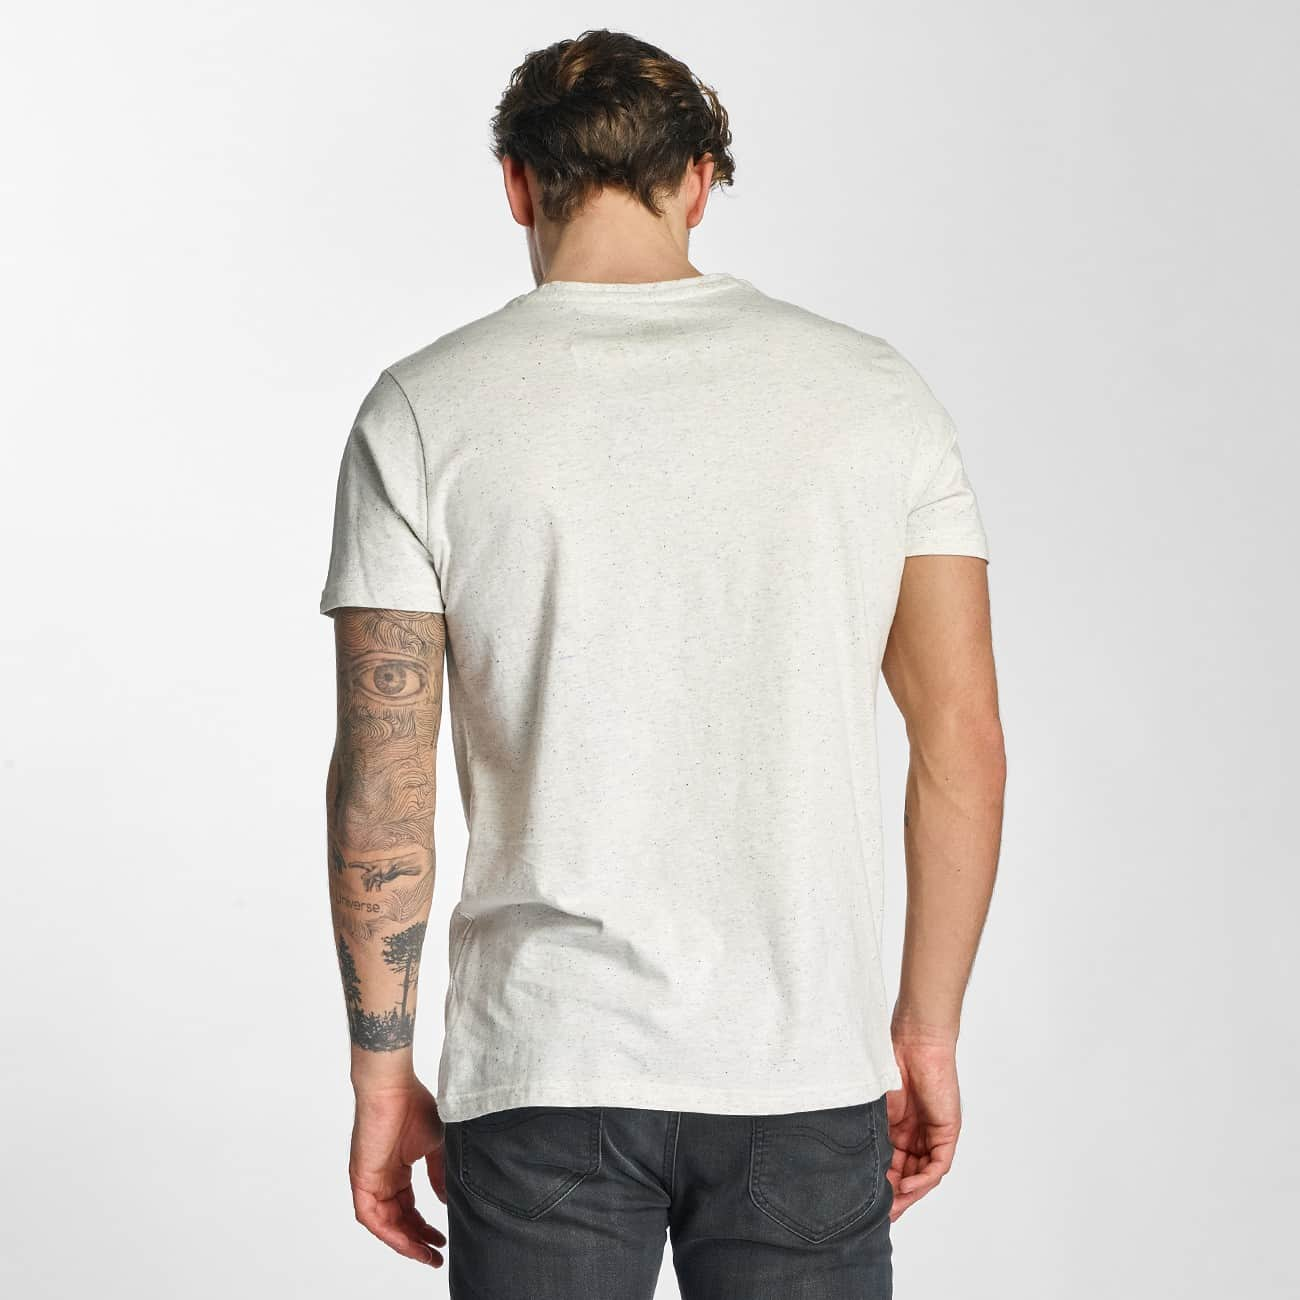 Streetwear fashion online shop just rhyse palm springs for T shirt city palm springs